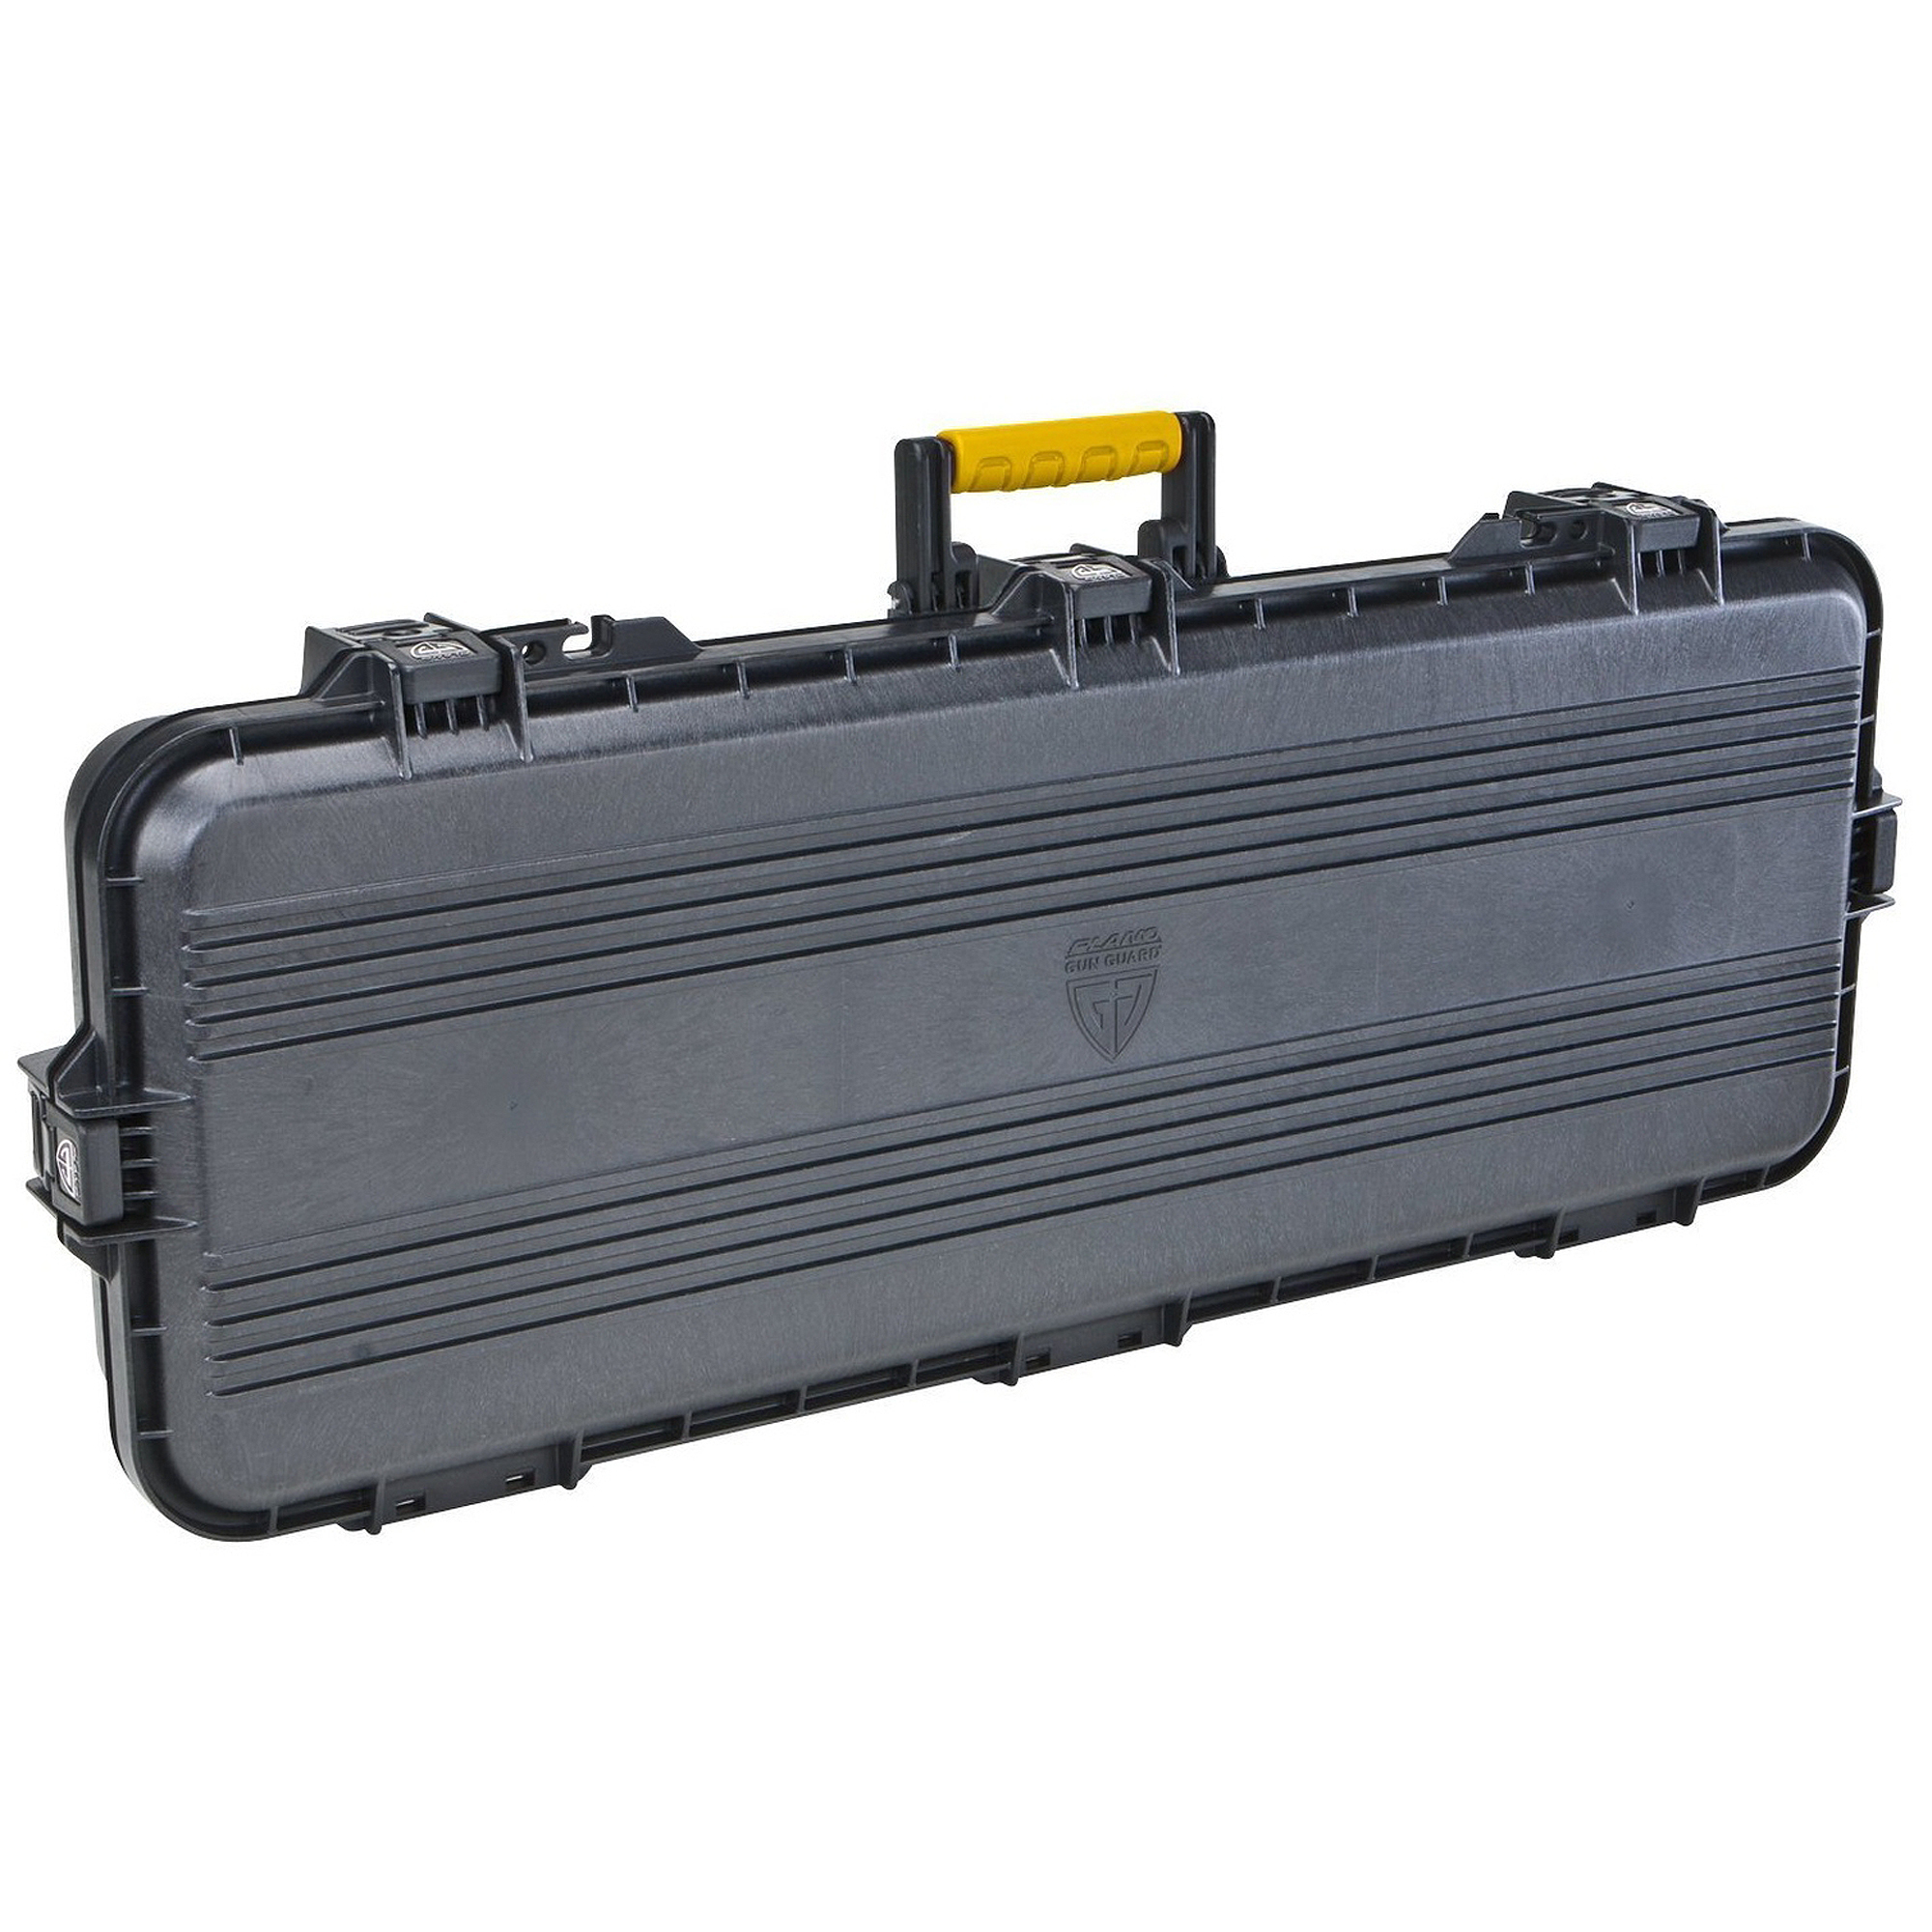 "Plano AW 36"" Case, Black with Yellow Latches and Handle"